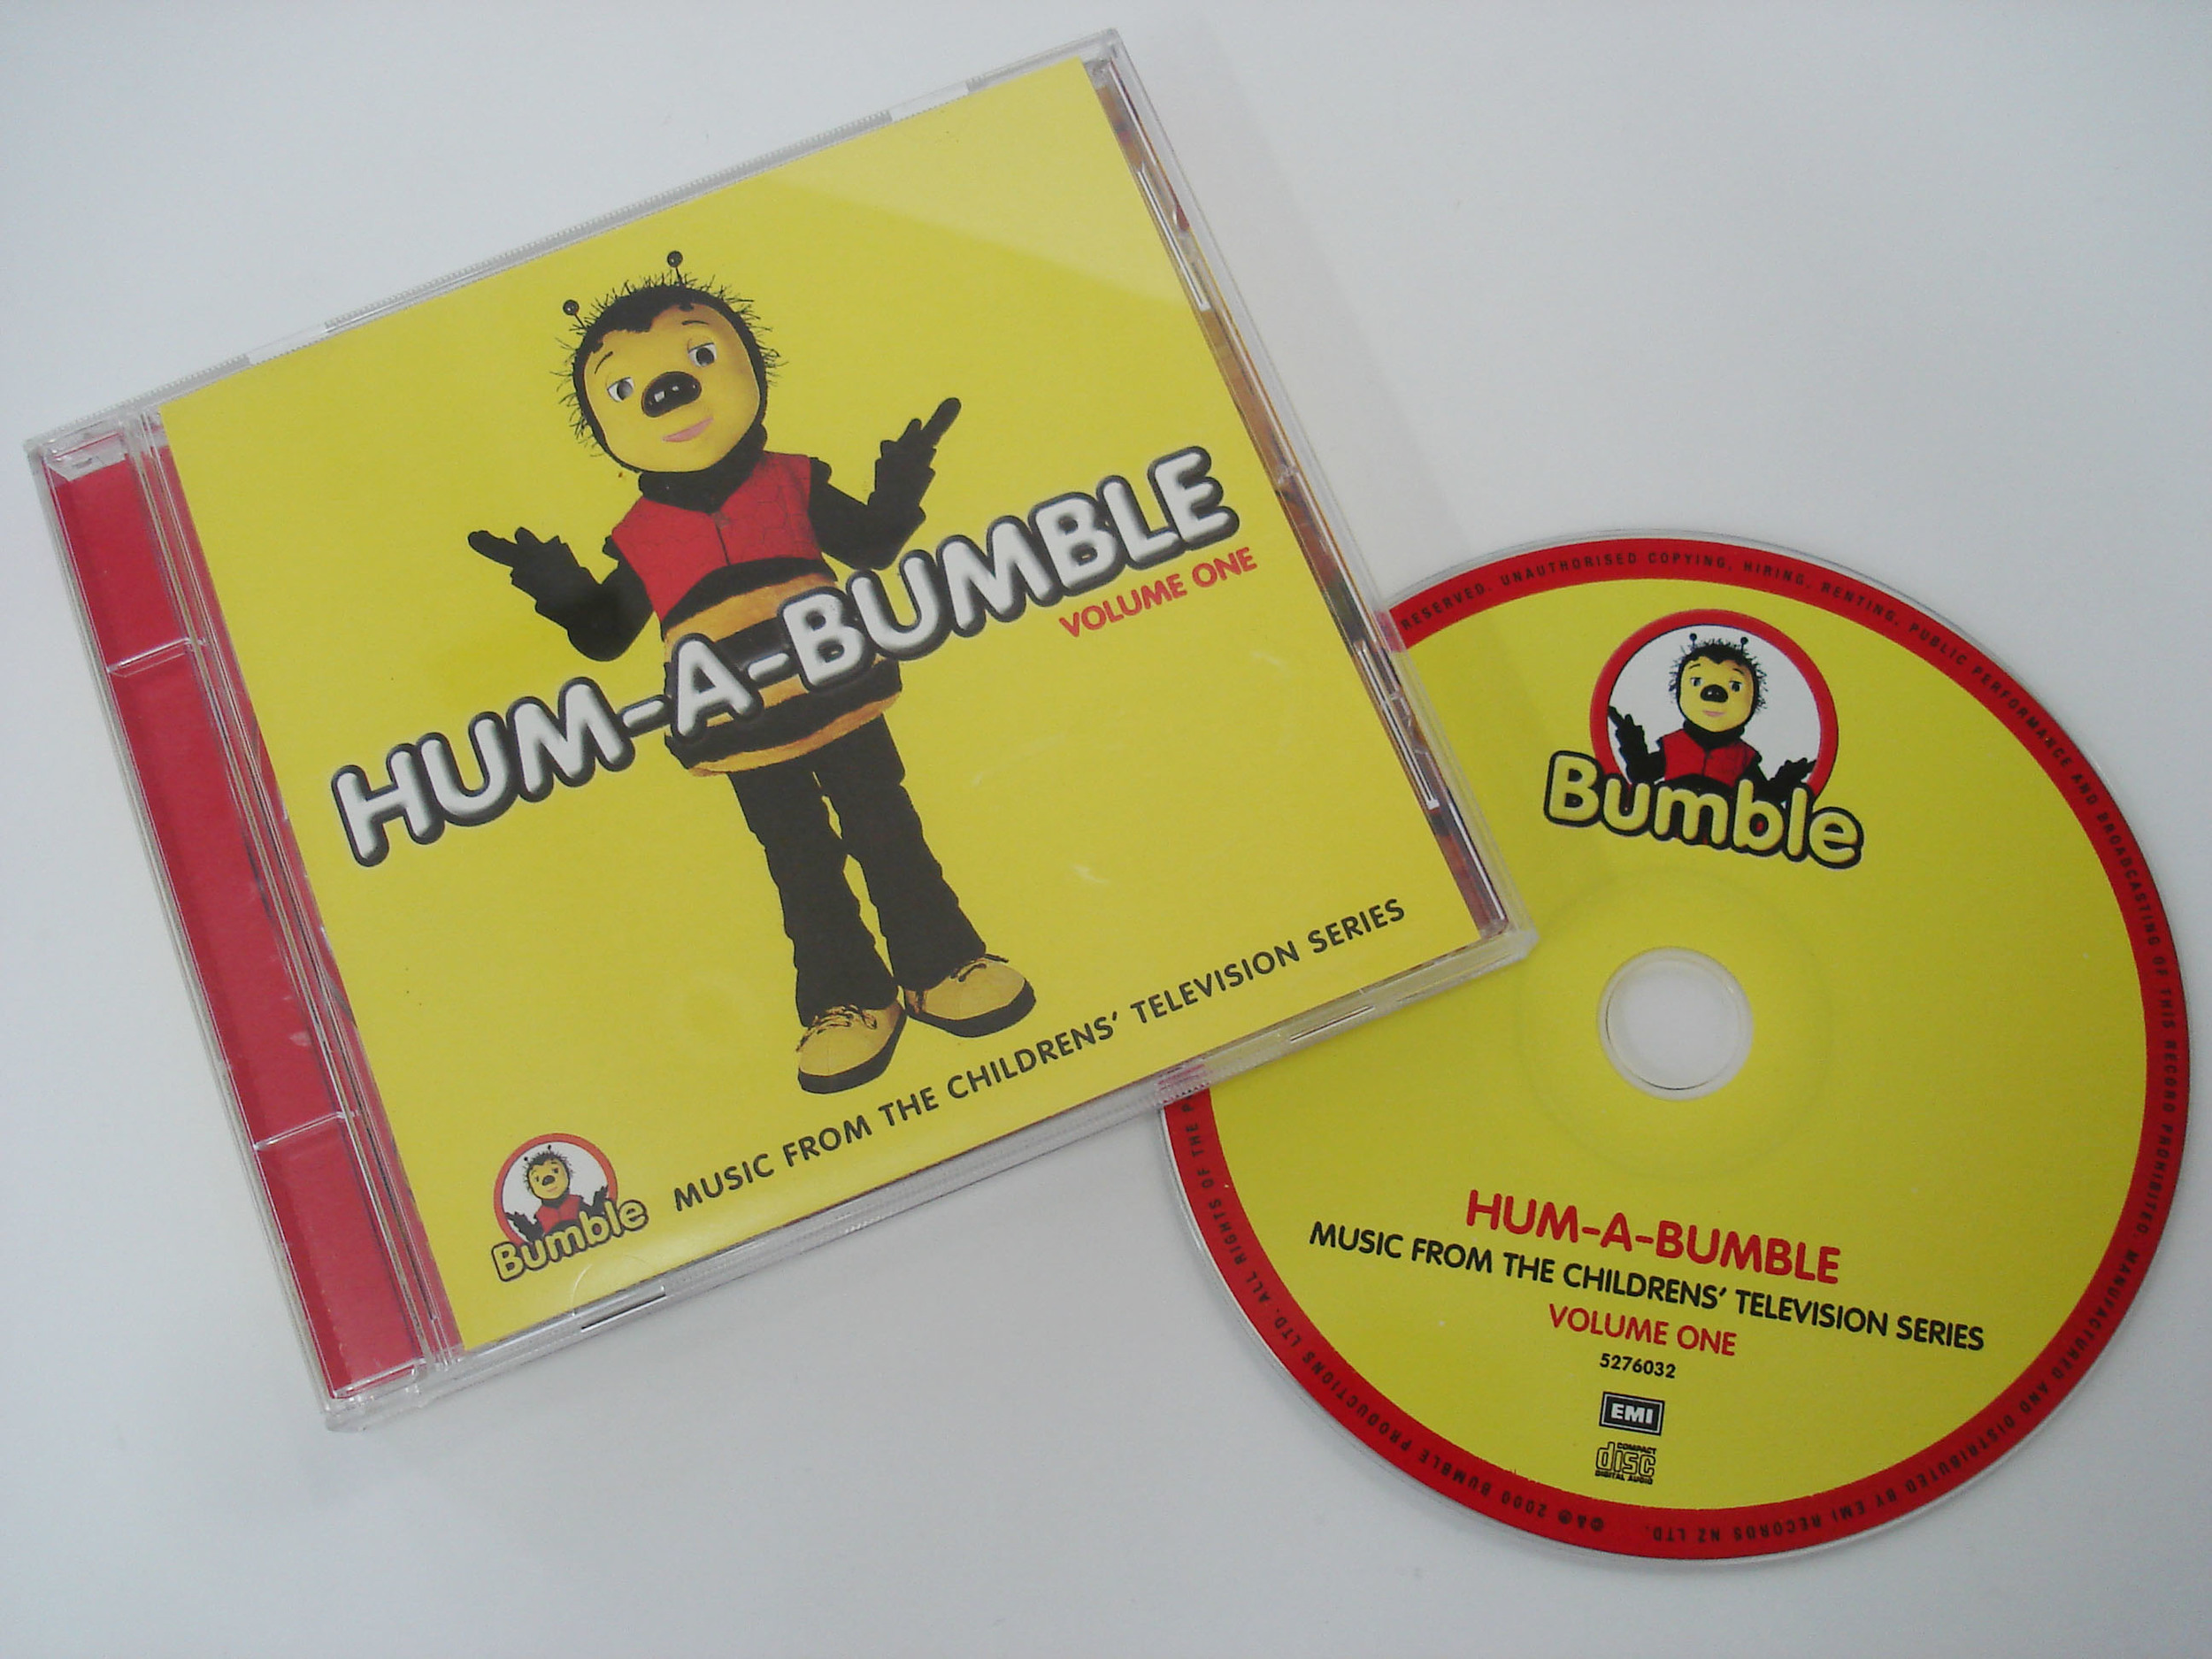 HUM-A-BUMBLE - VOLUME ONE